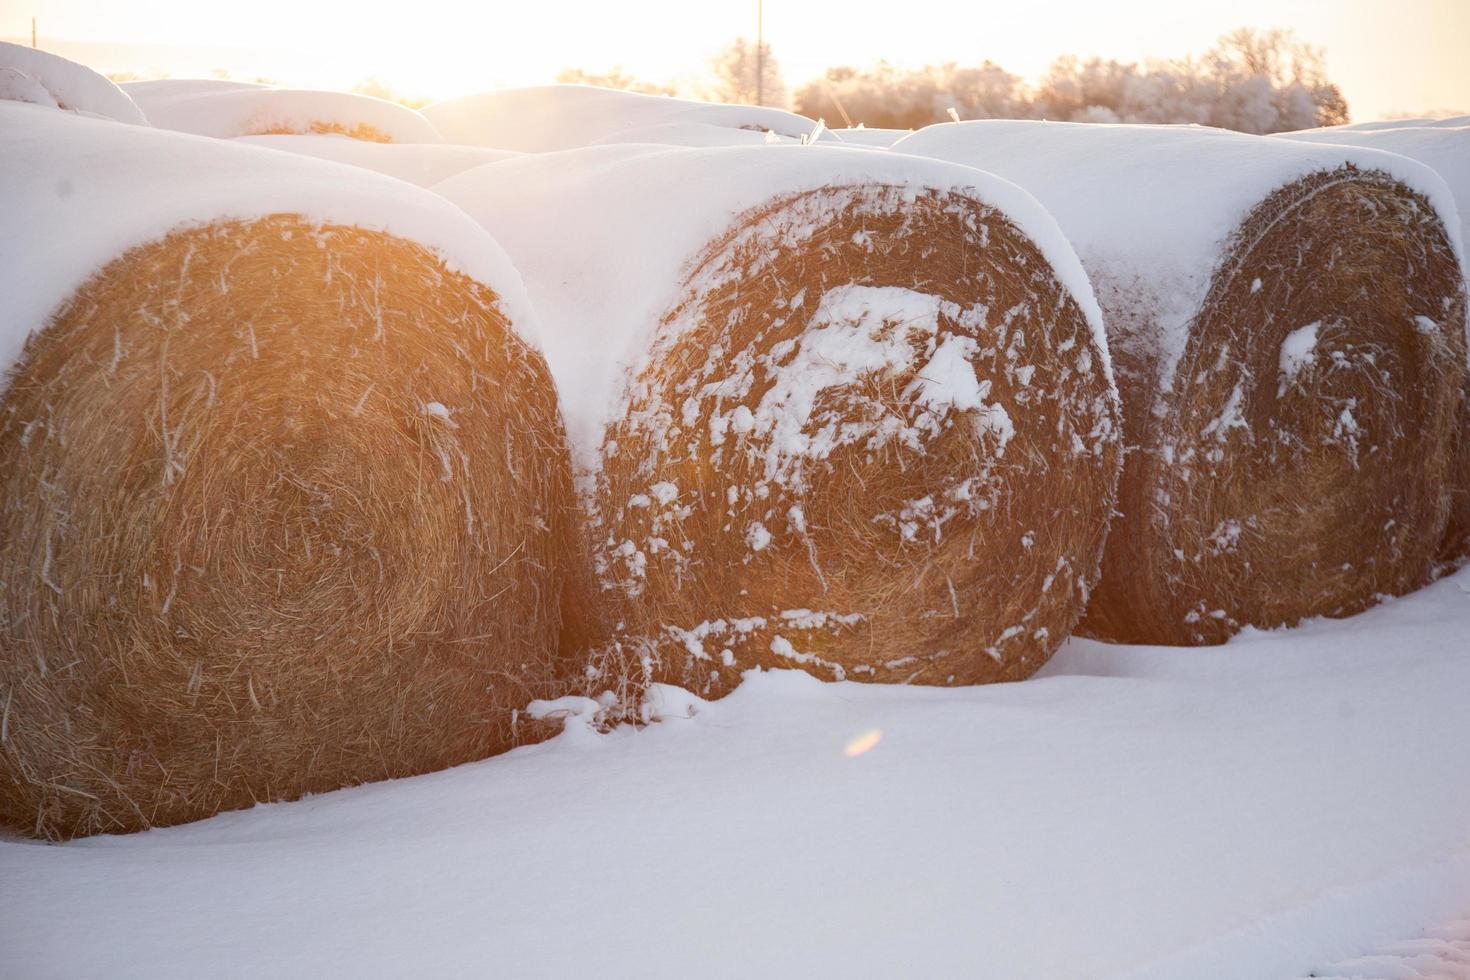 Bails of hay at sunrise in the snow photo